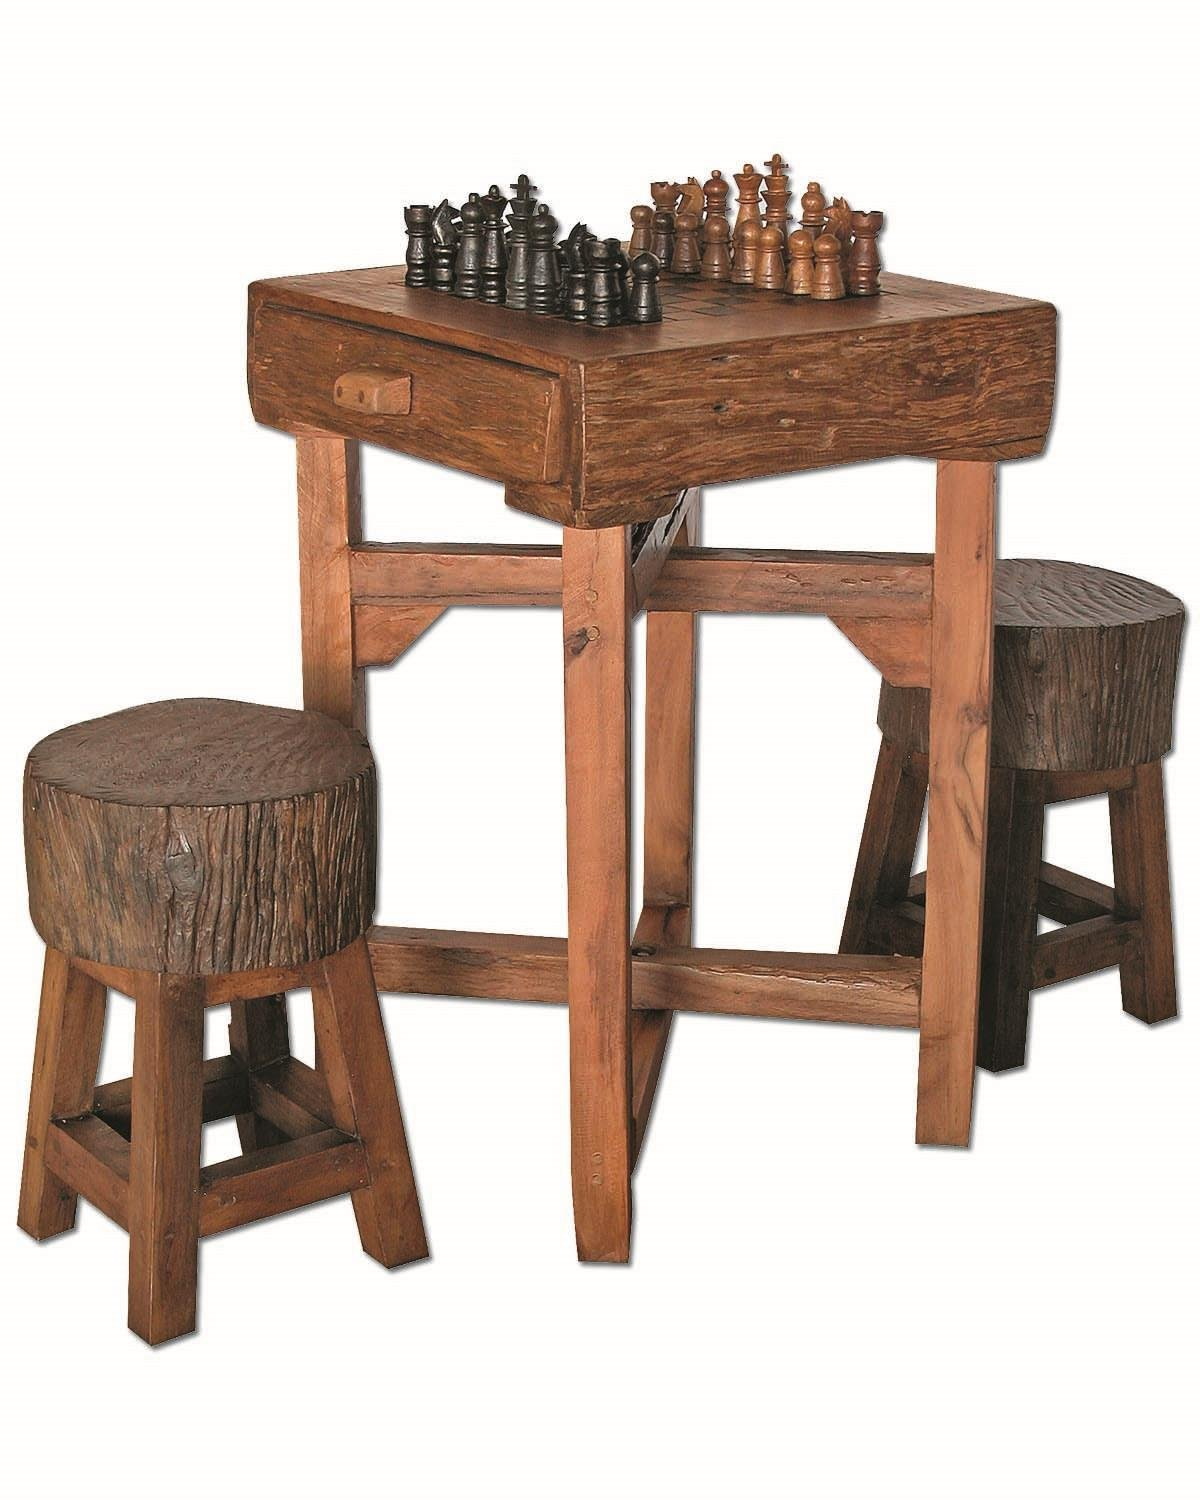 GROOVYSTUFF TF-0538-S Hill Country Chess Table